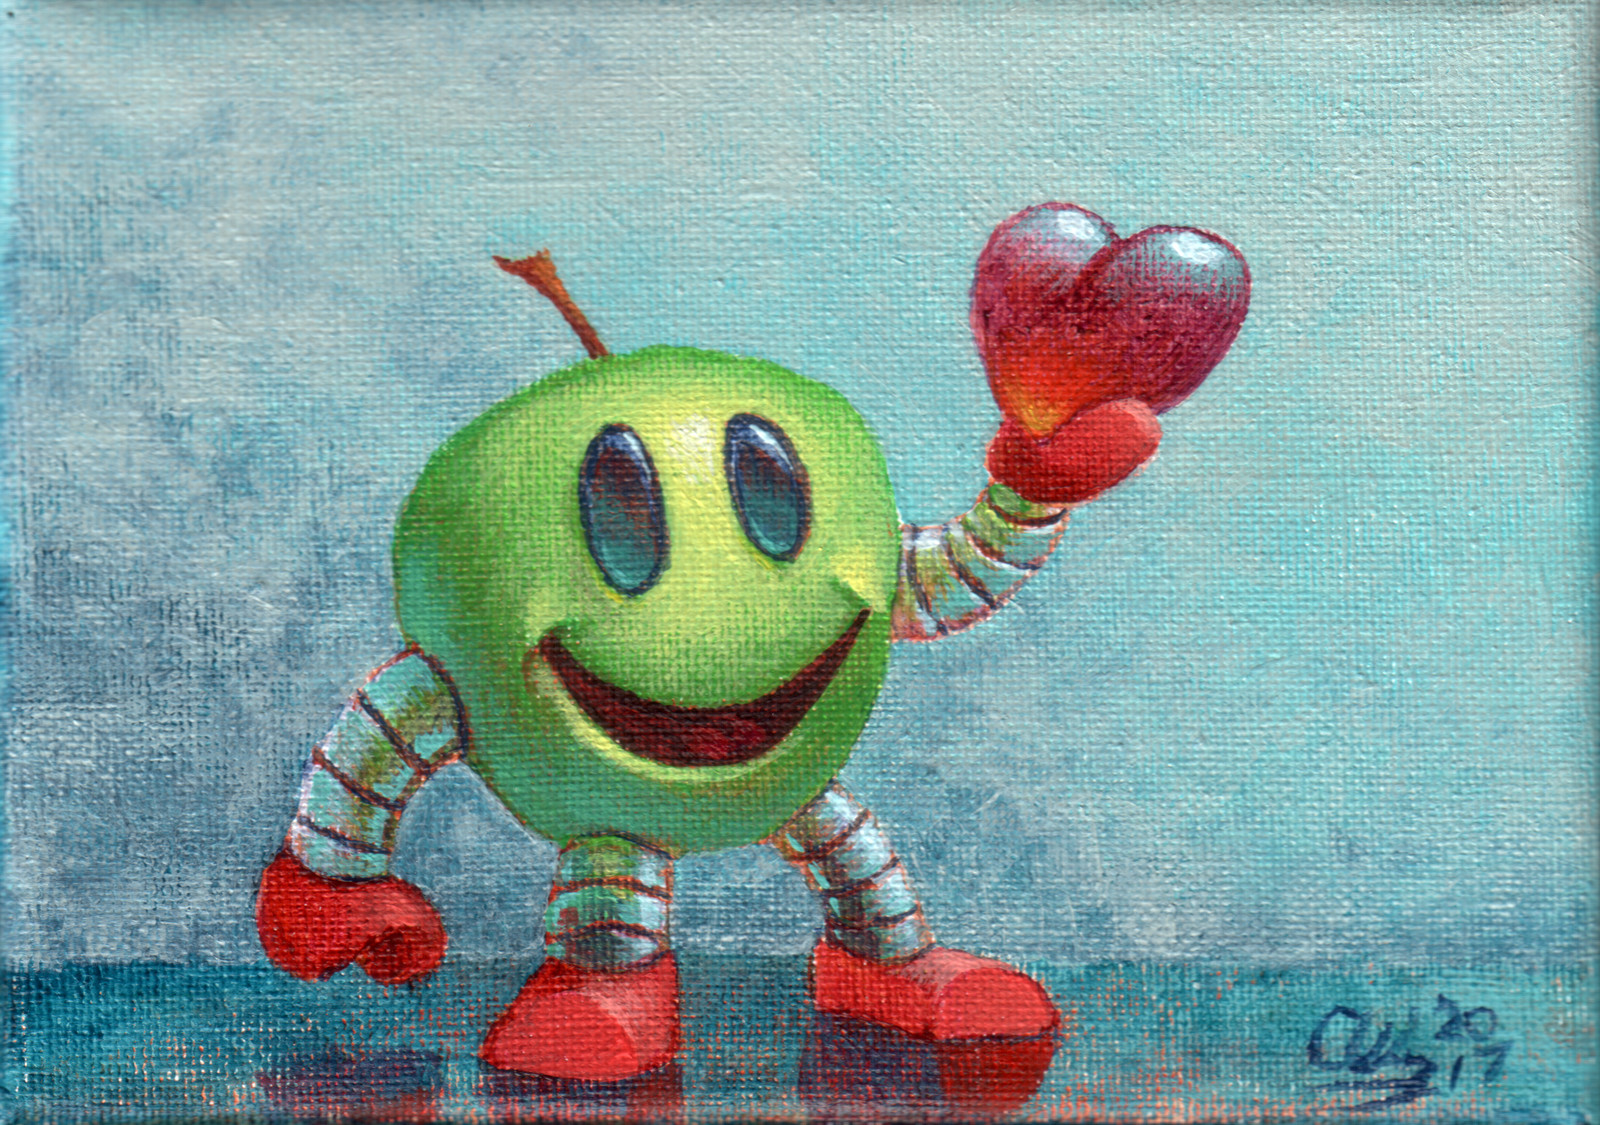 2017 - Robot Apple with Sweet Heart